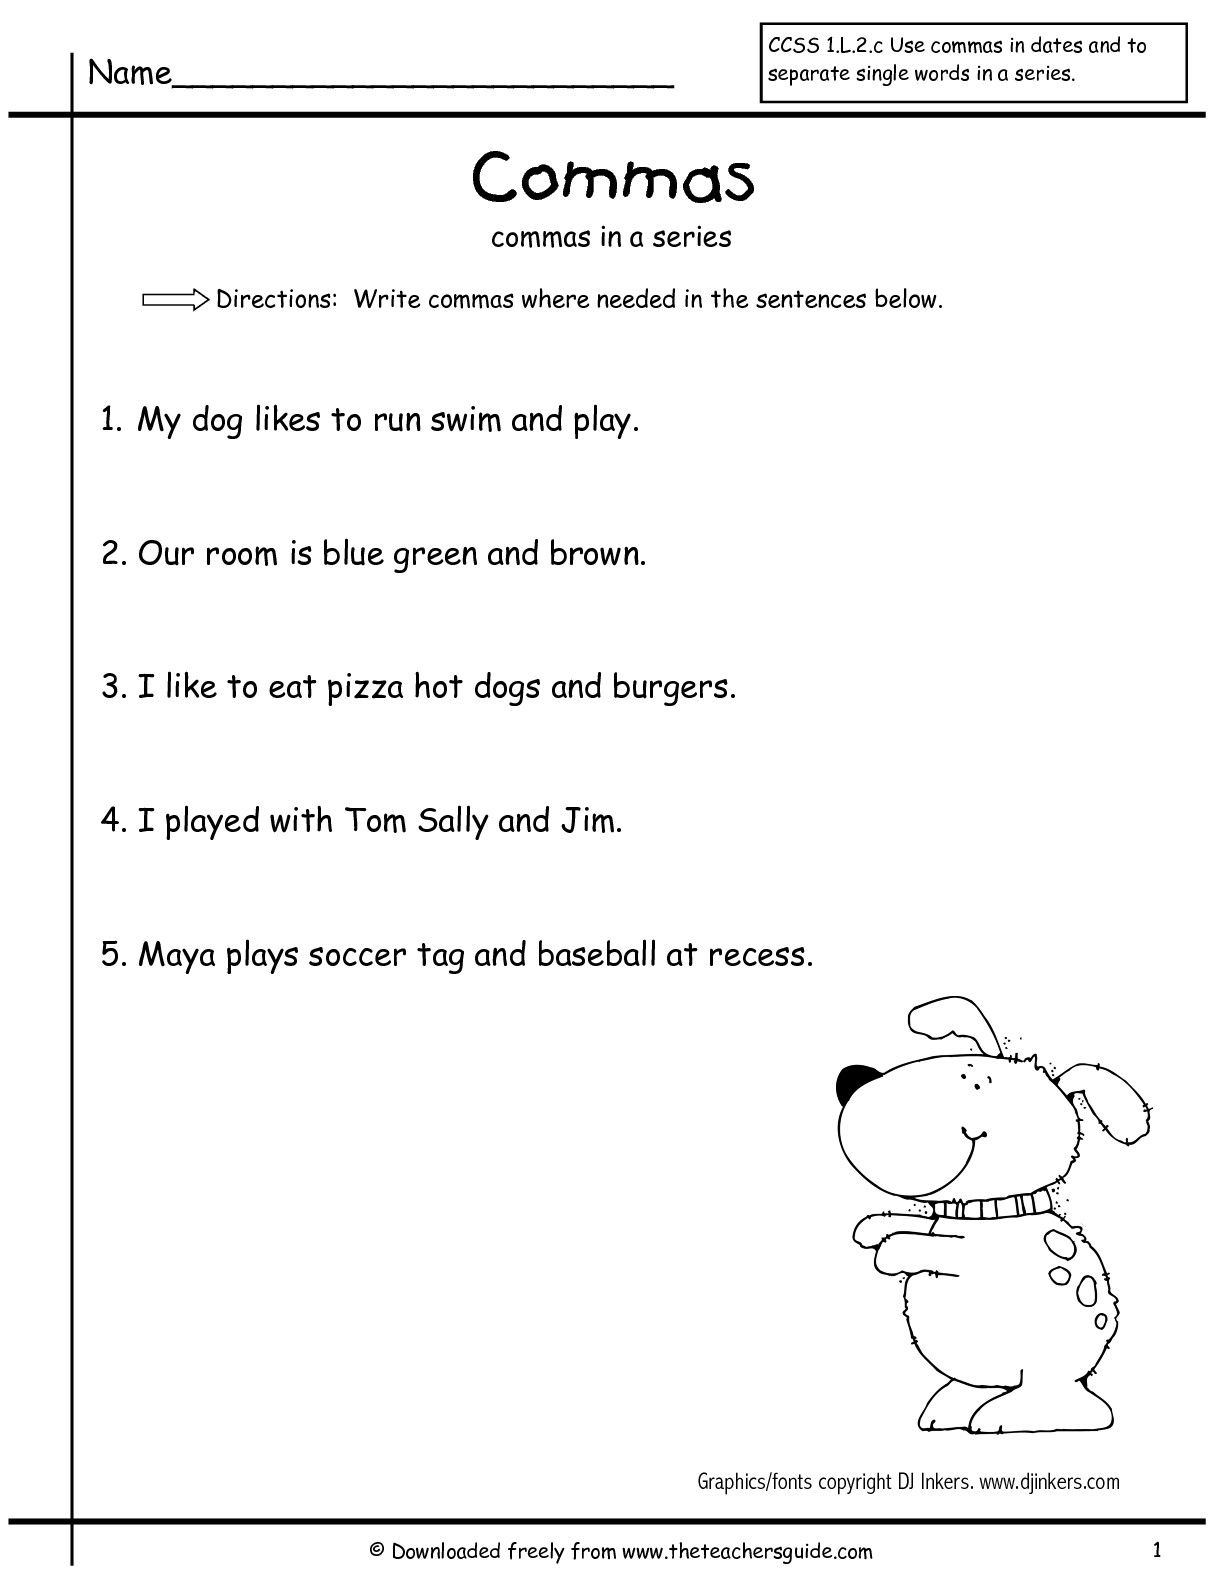 Worksheets Comma Worksheet commas in a series grammar pinterest worksheets punctuation series